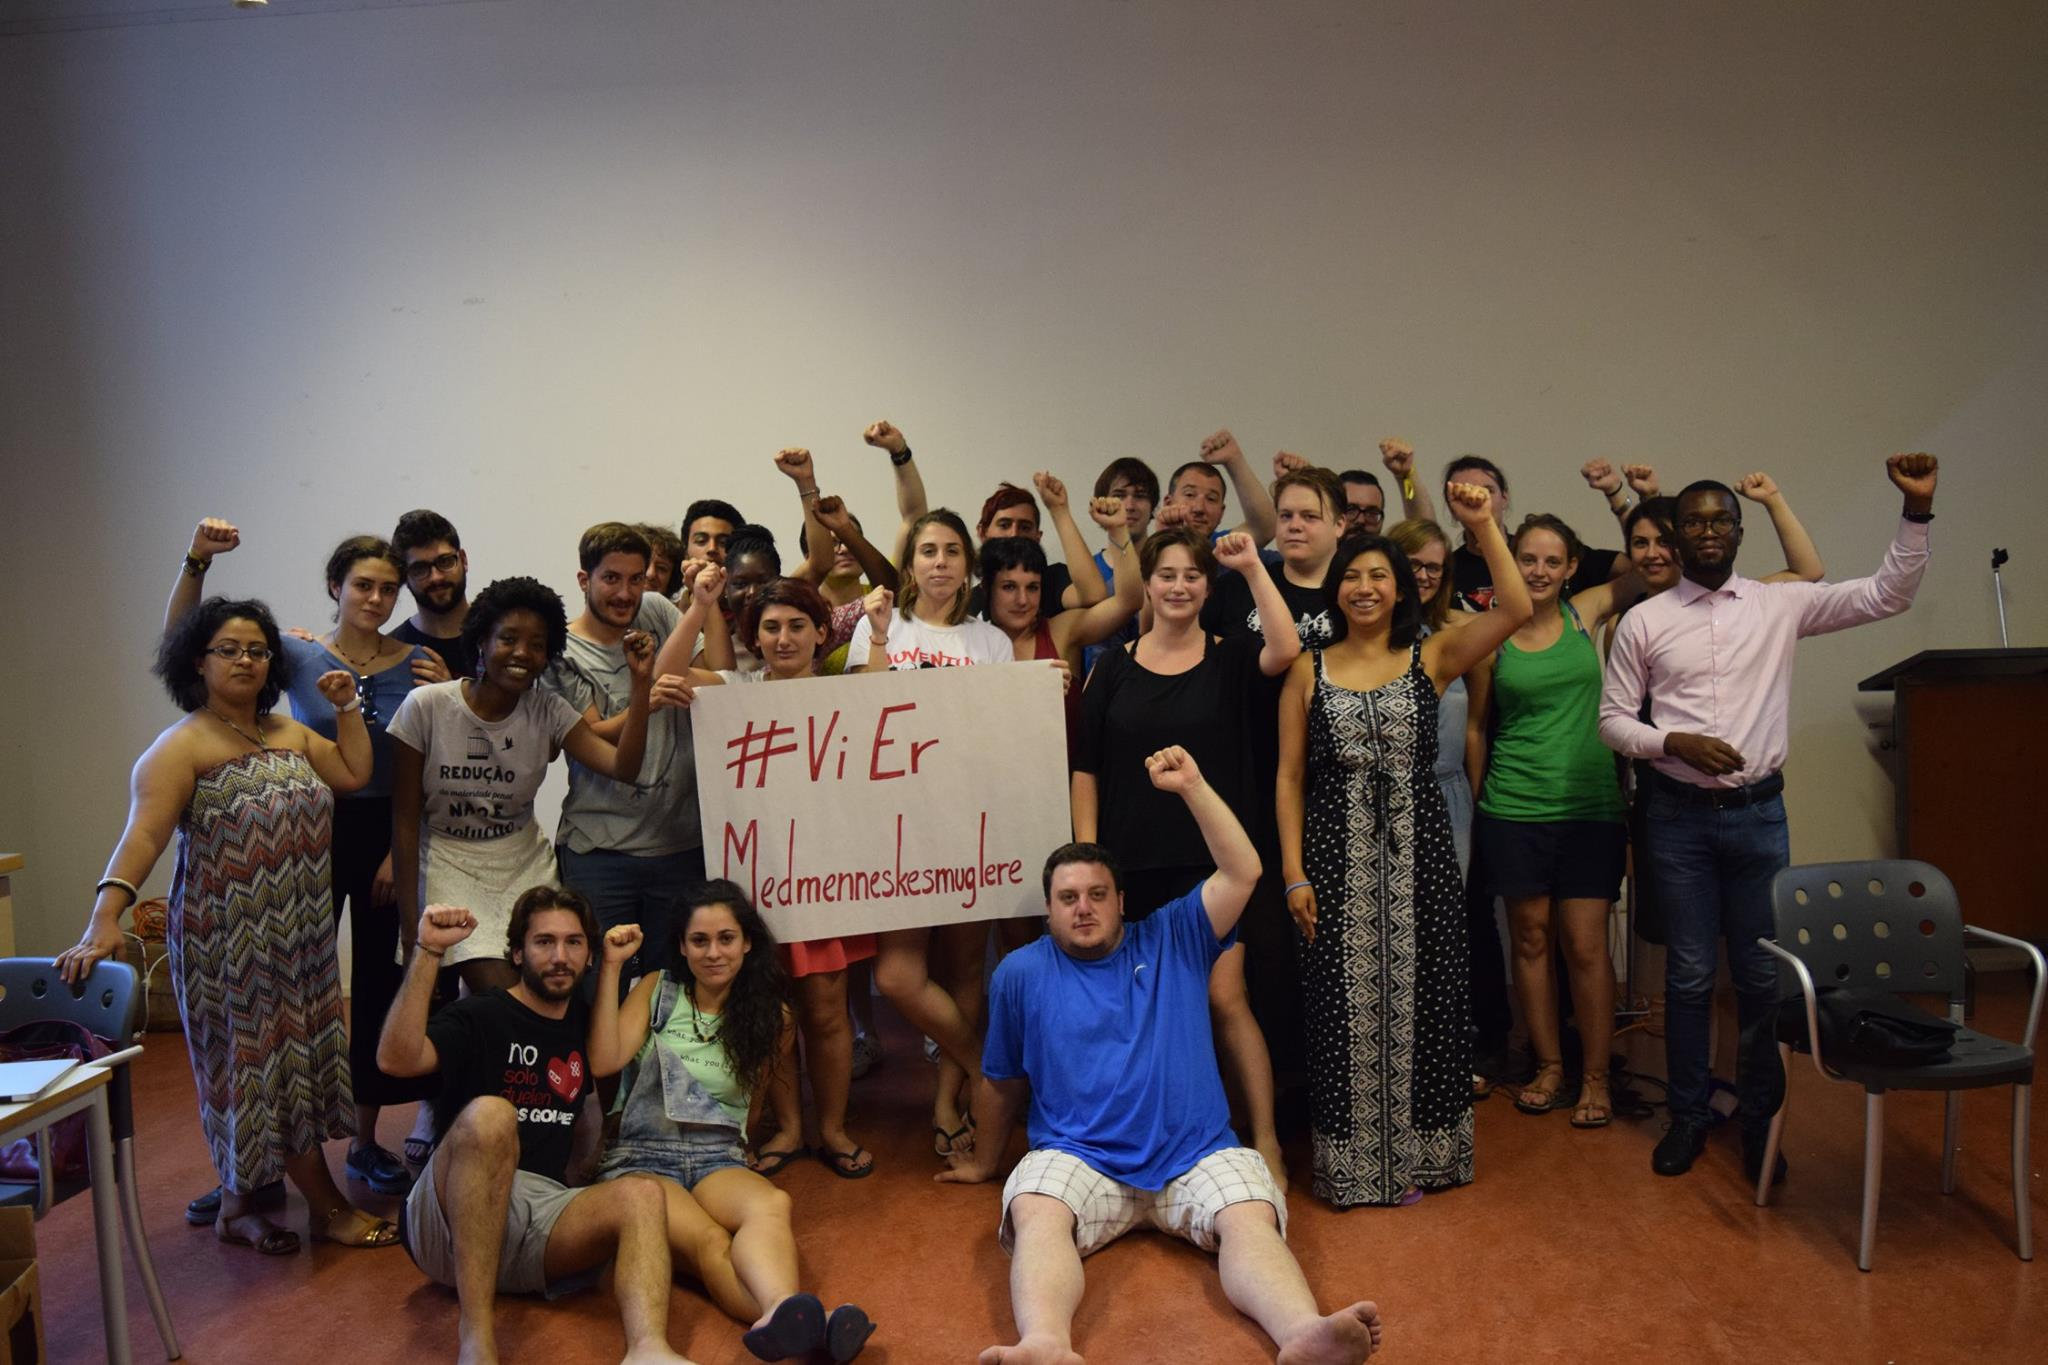 Participants in the Youth School show their support ot Danish refugee-activists